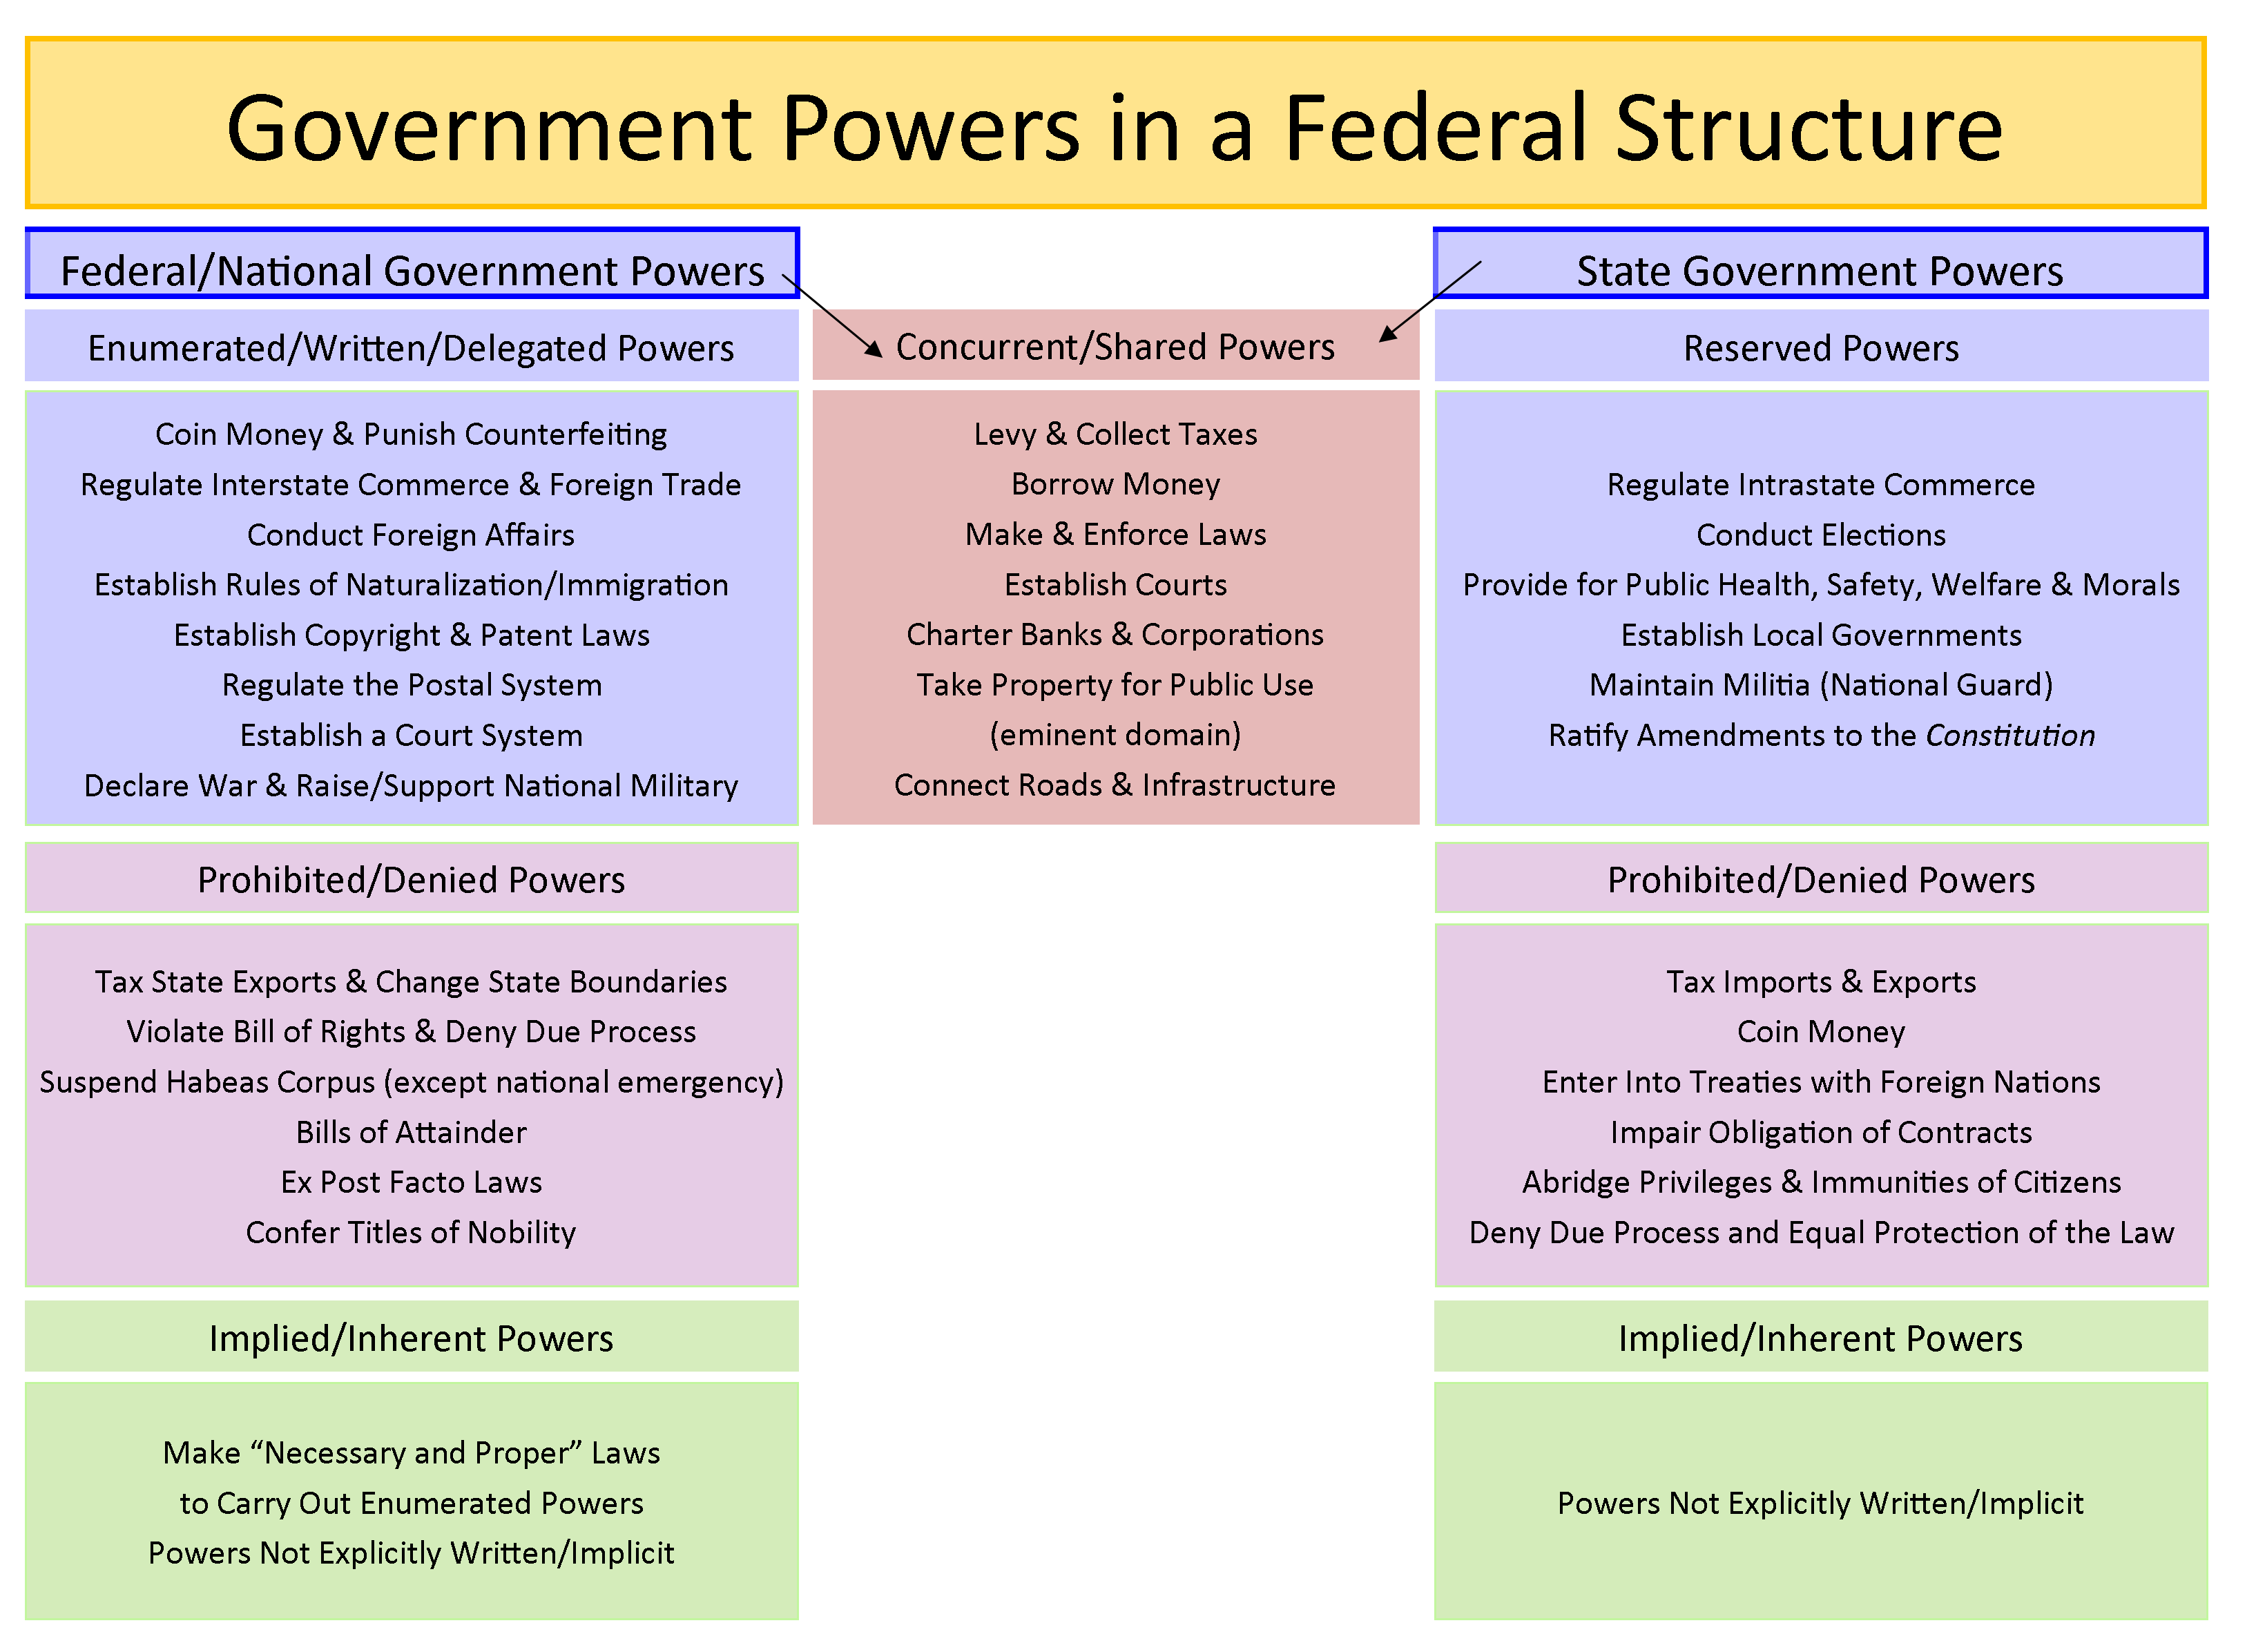 Chart illustrating government powers as shared between the national and state governments and which powers belong to the separate levels of government.